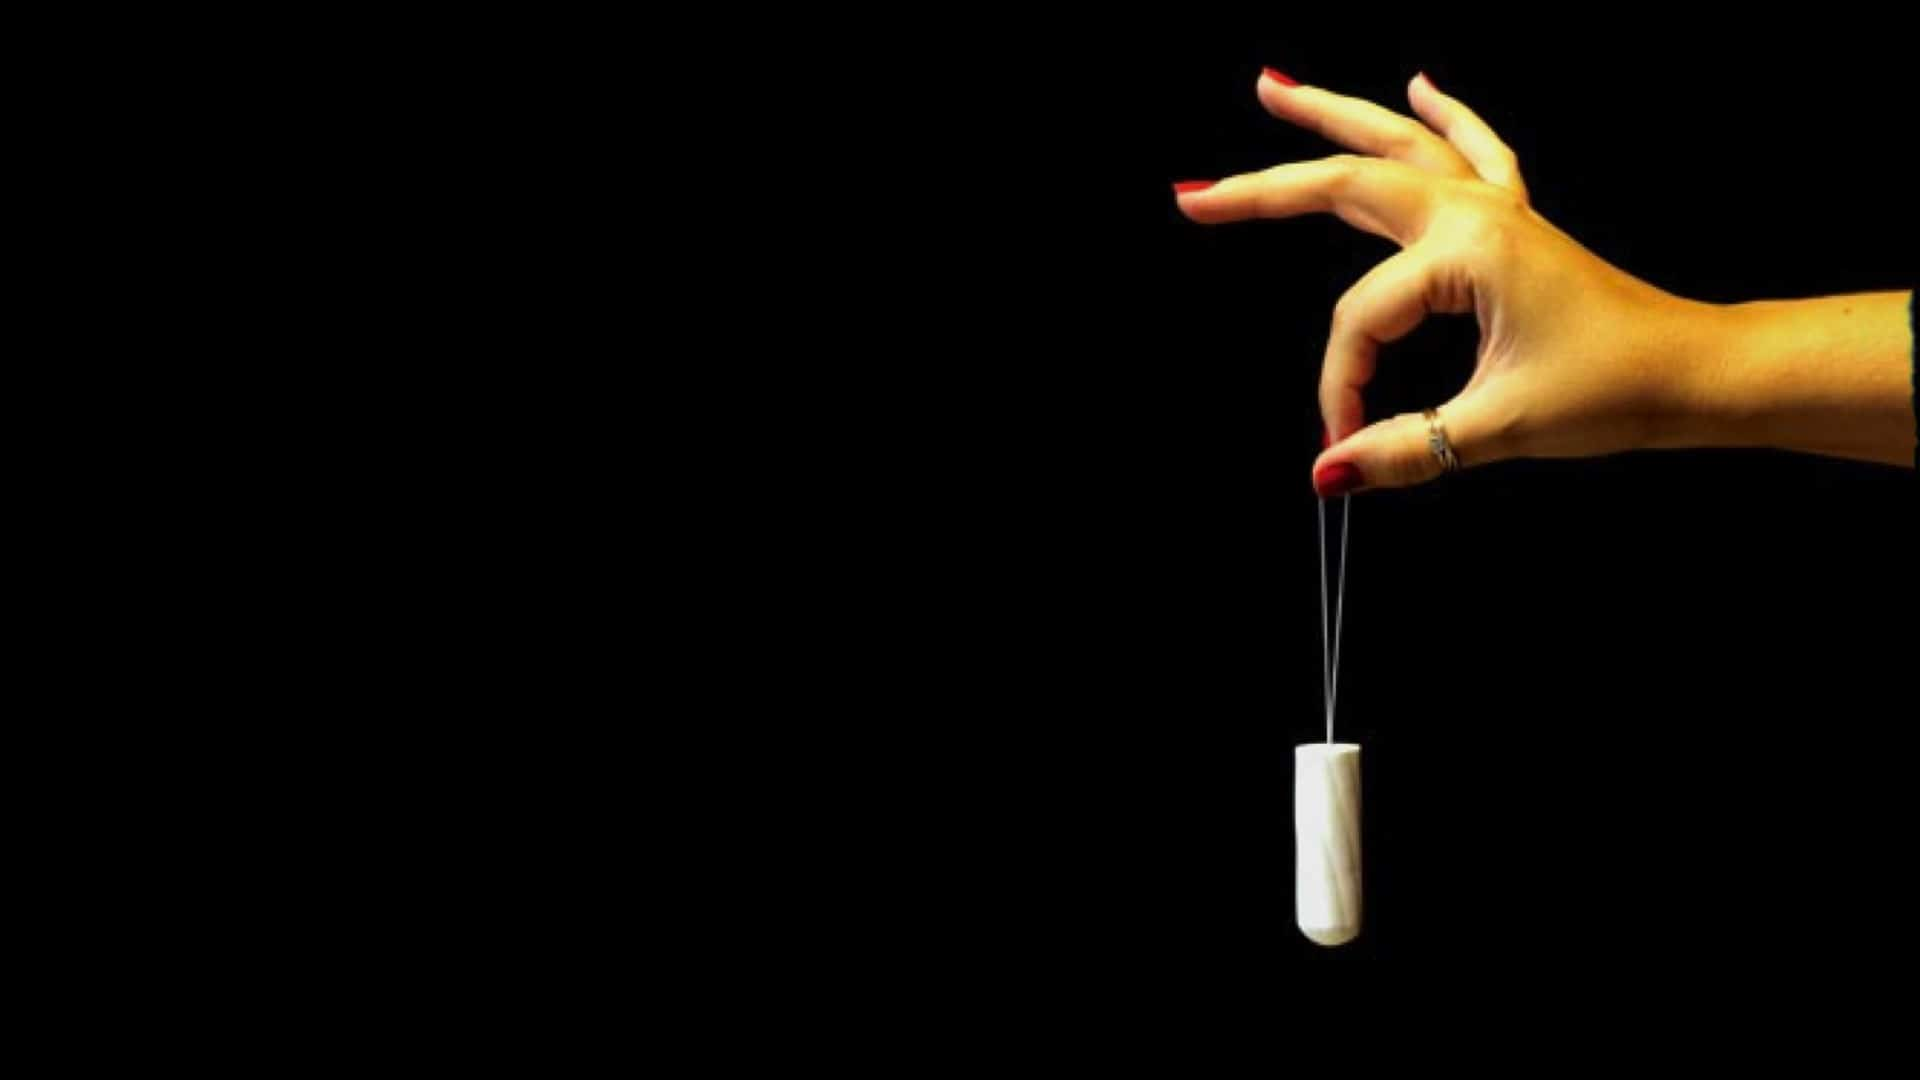 Against a dark background, from the right-hand side, a hand and forearm can be seen. The hand is holding the string of a dangling tampon between a finger and thumb.